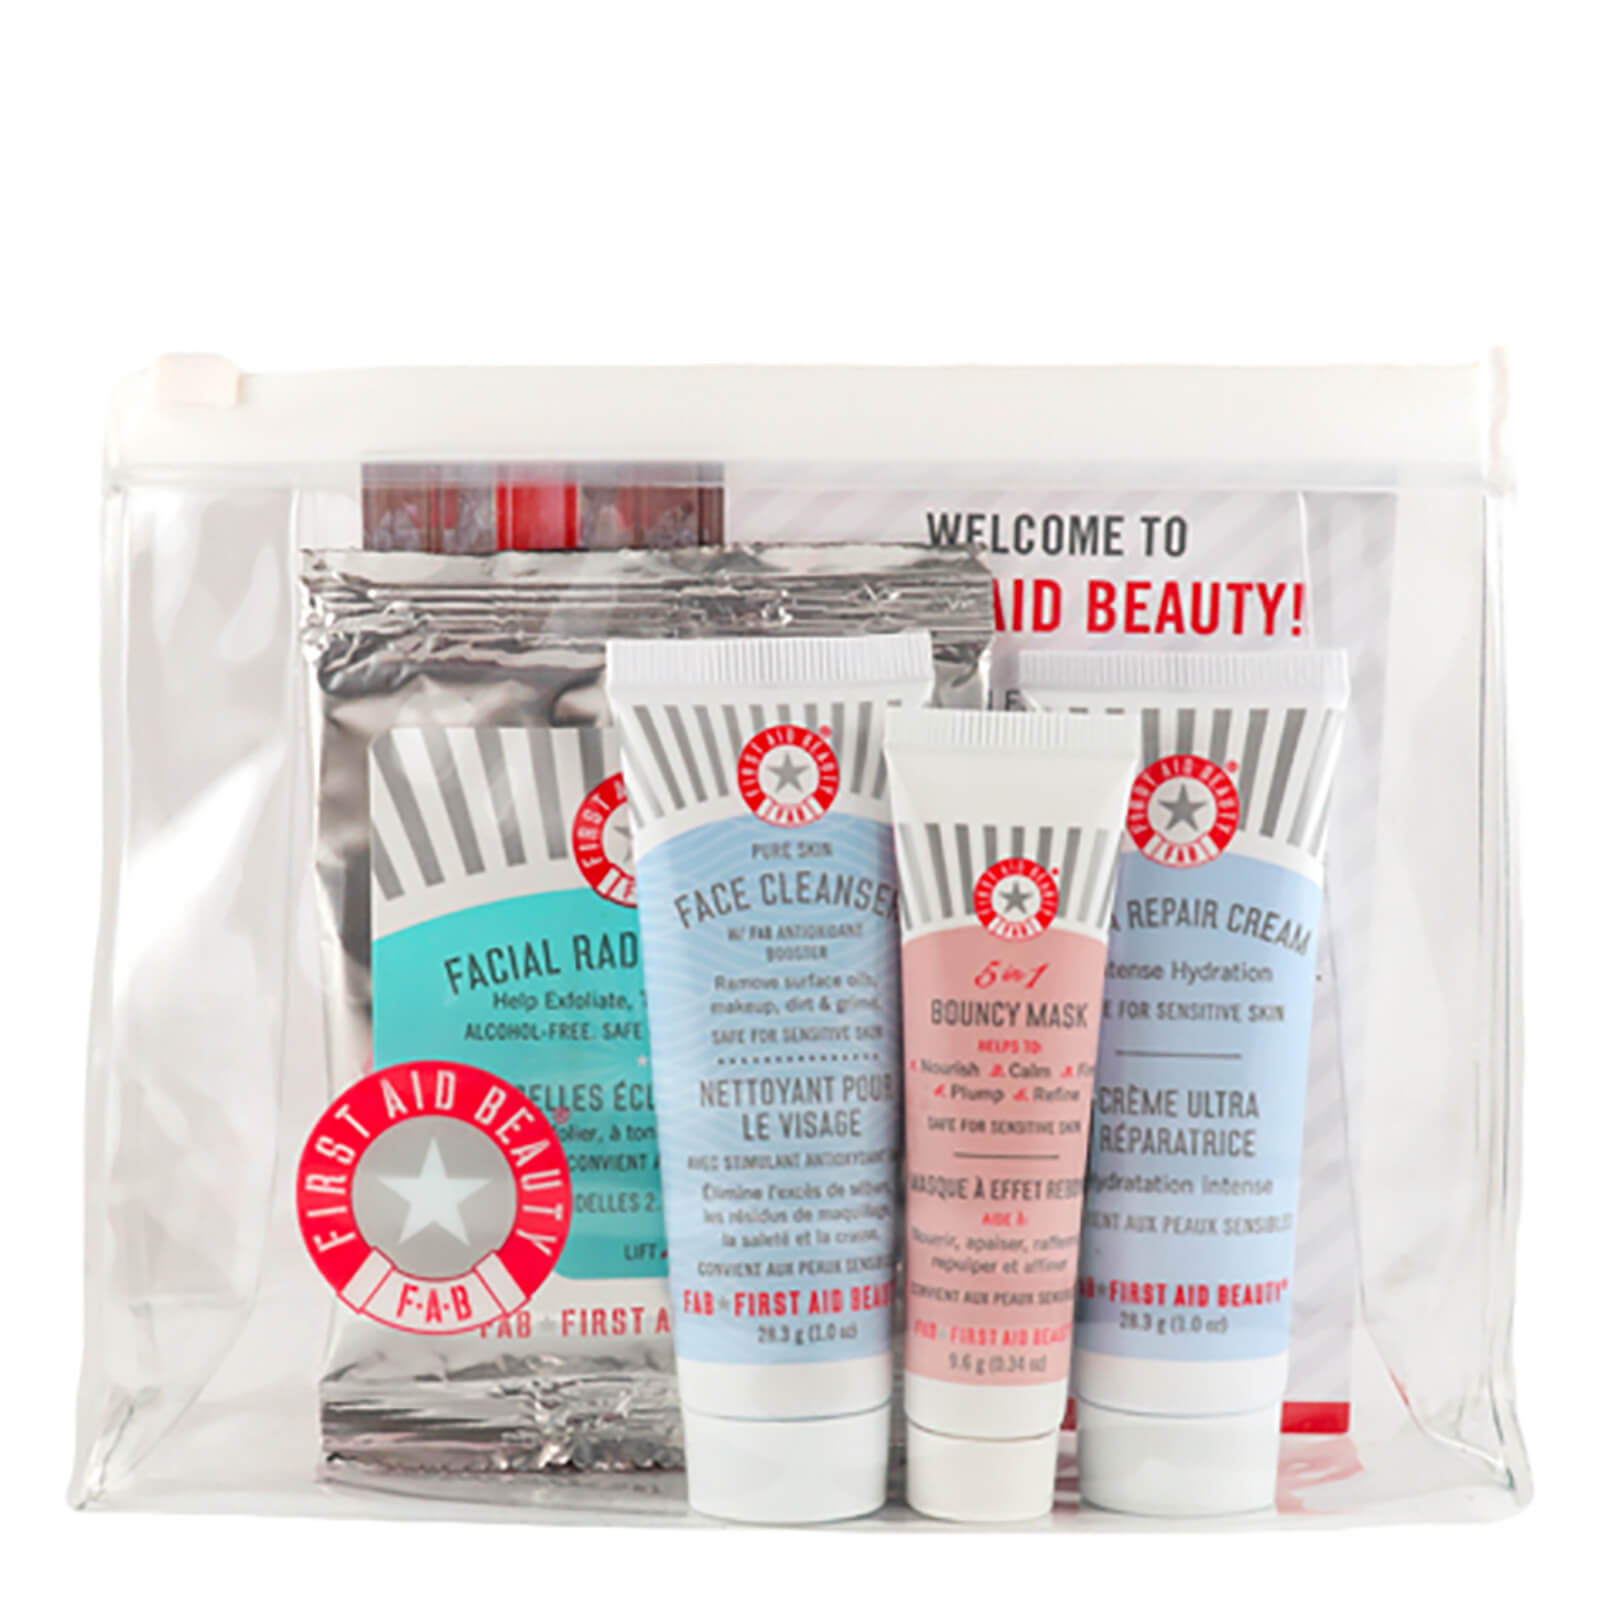 First Aid Beauty Gift Includes Face Cleanser Ultra Repair Cream 5 In 1 Bouncy Mask Facial Radiance Pads